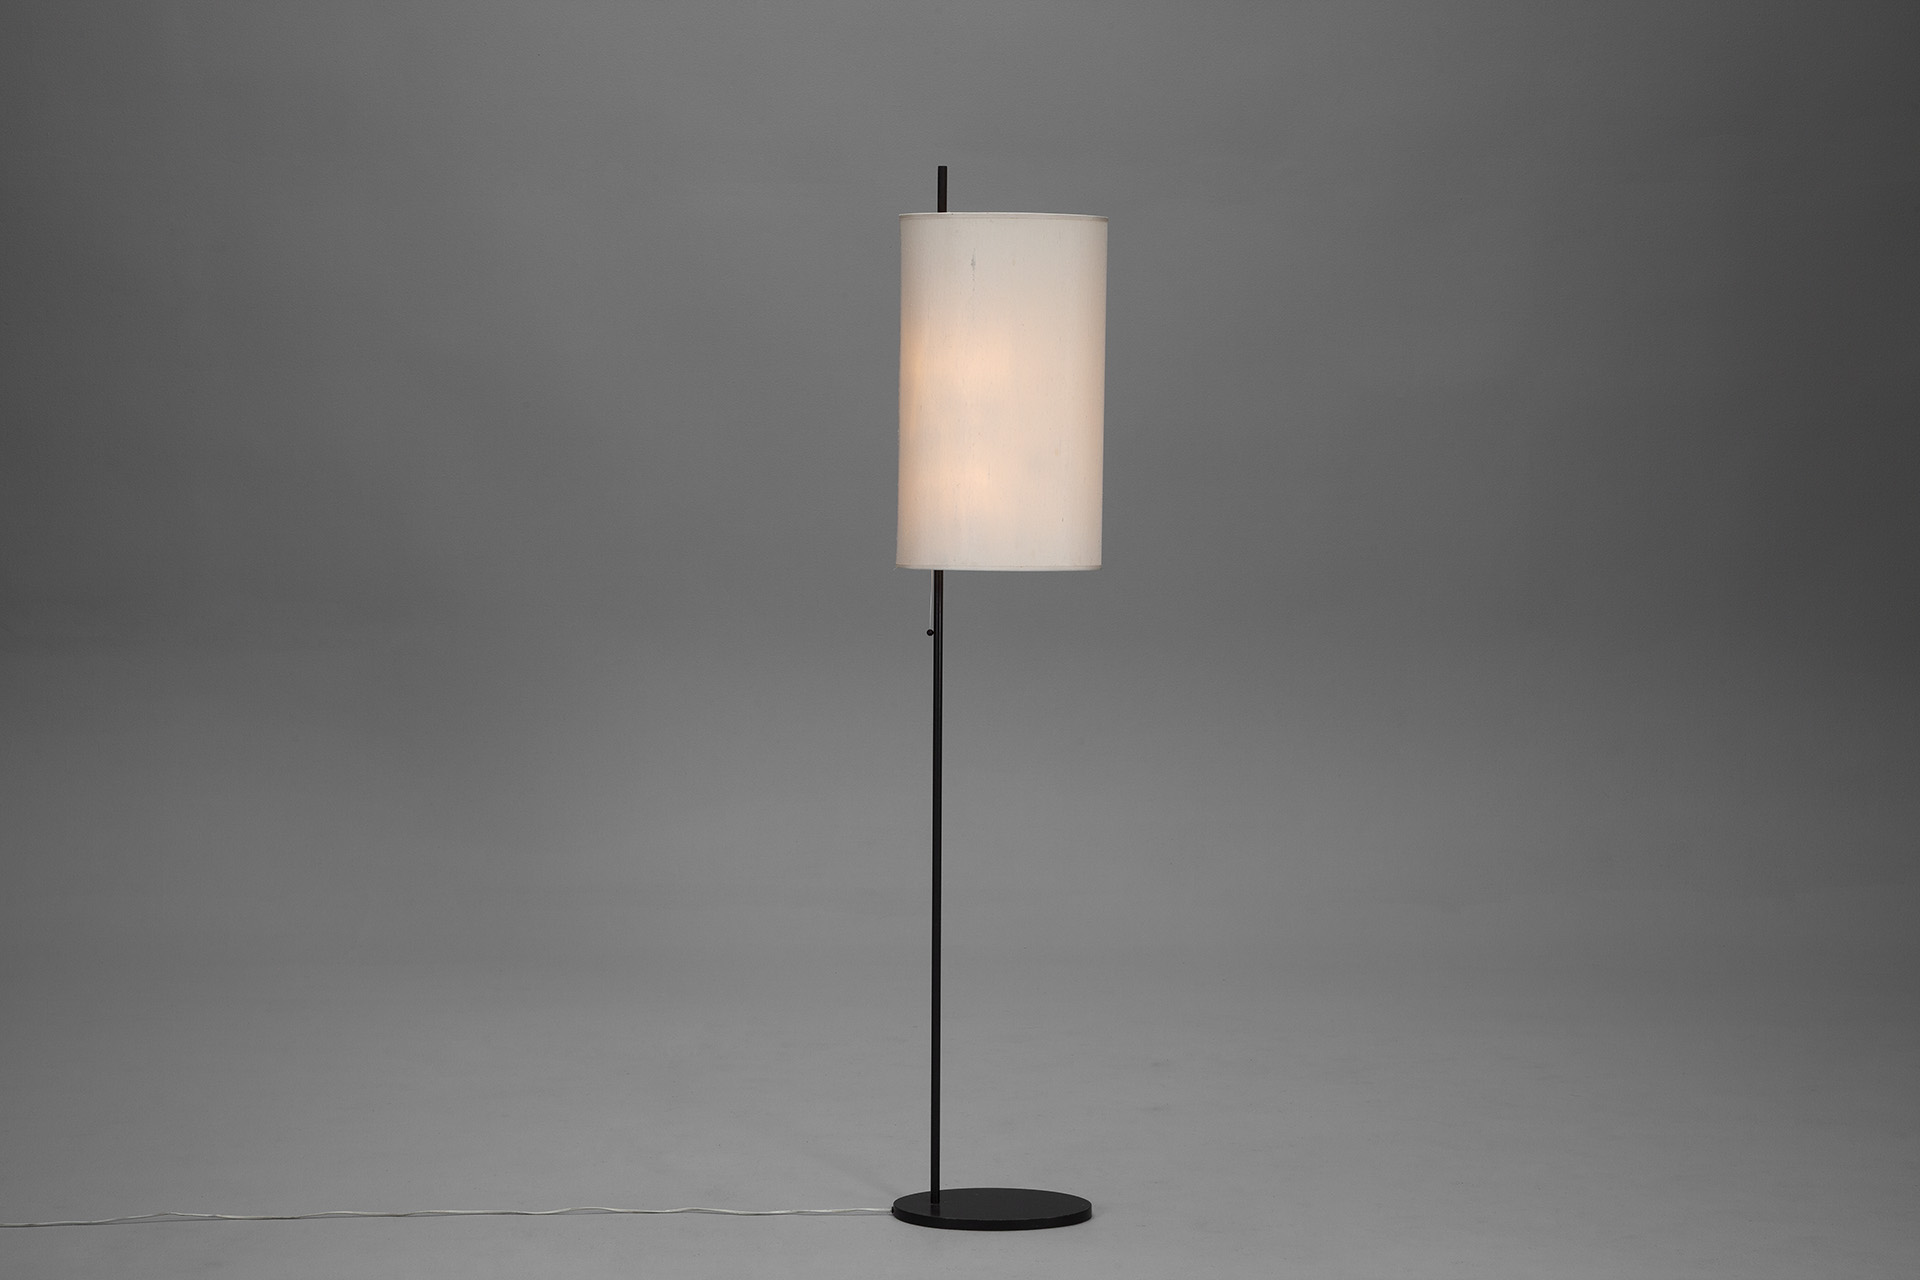 Jacksons Arne Jacobsen Floor Lamp